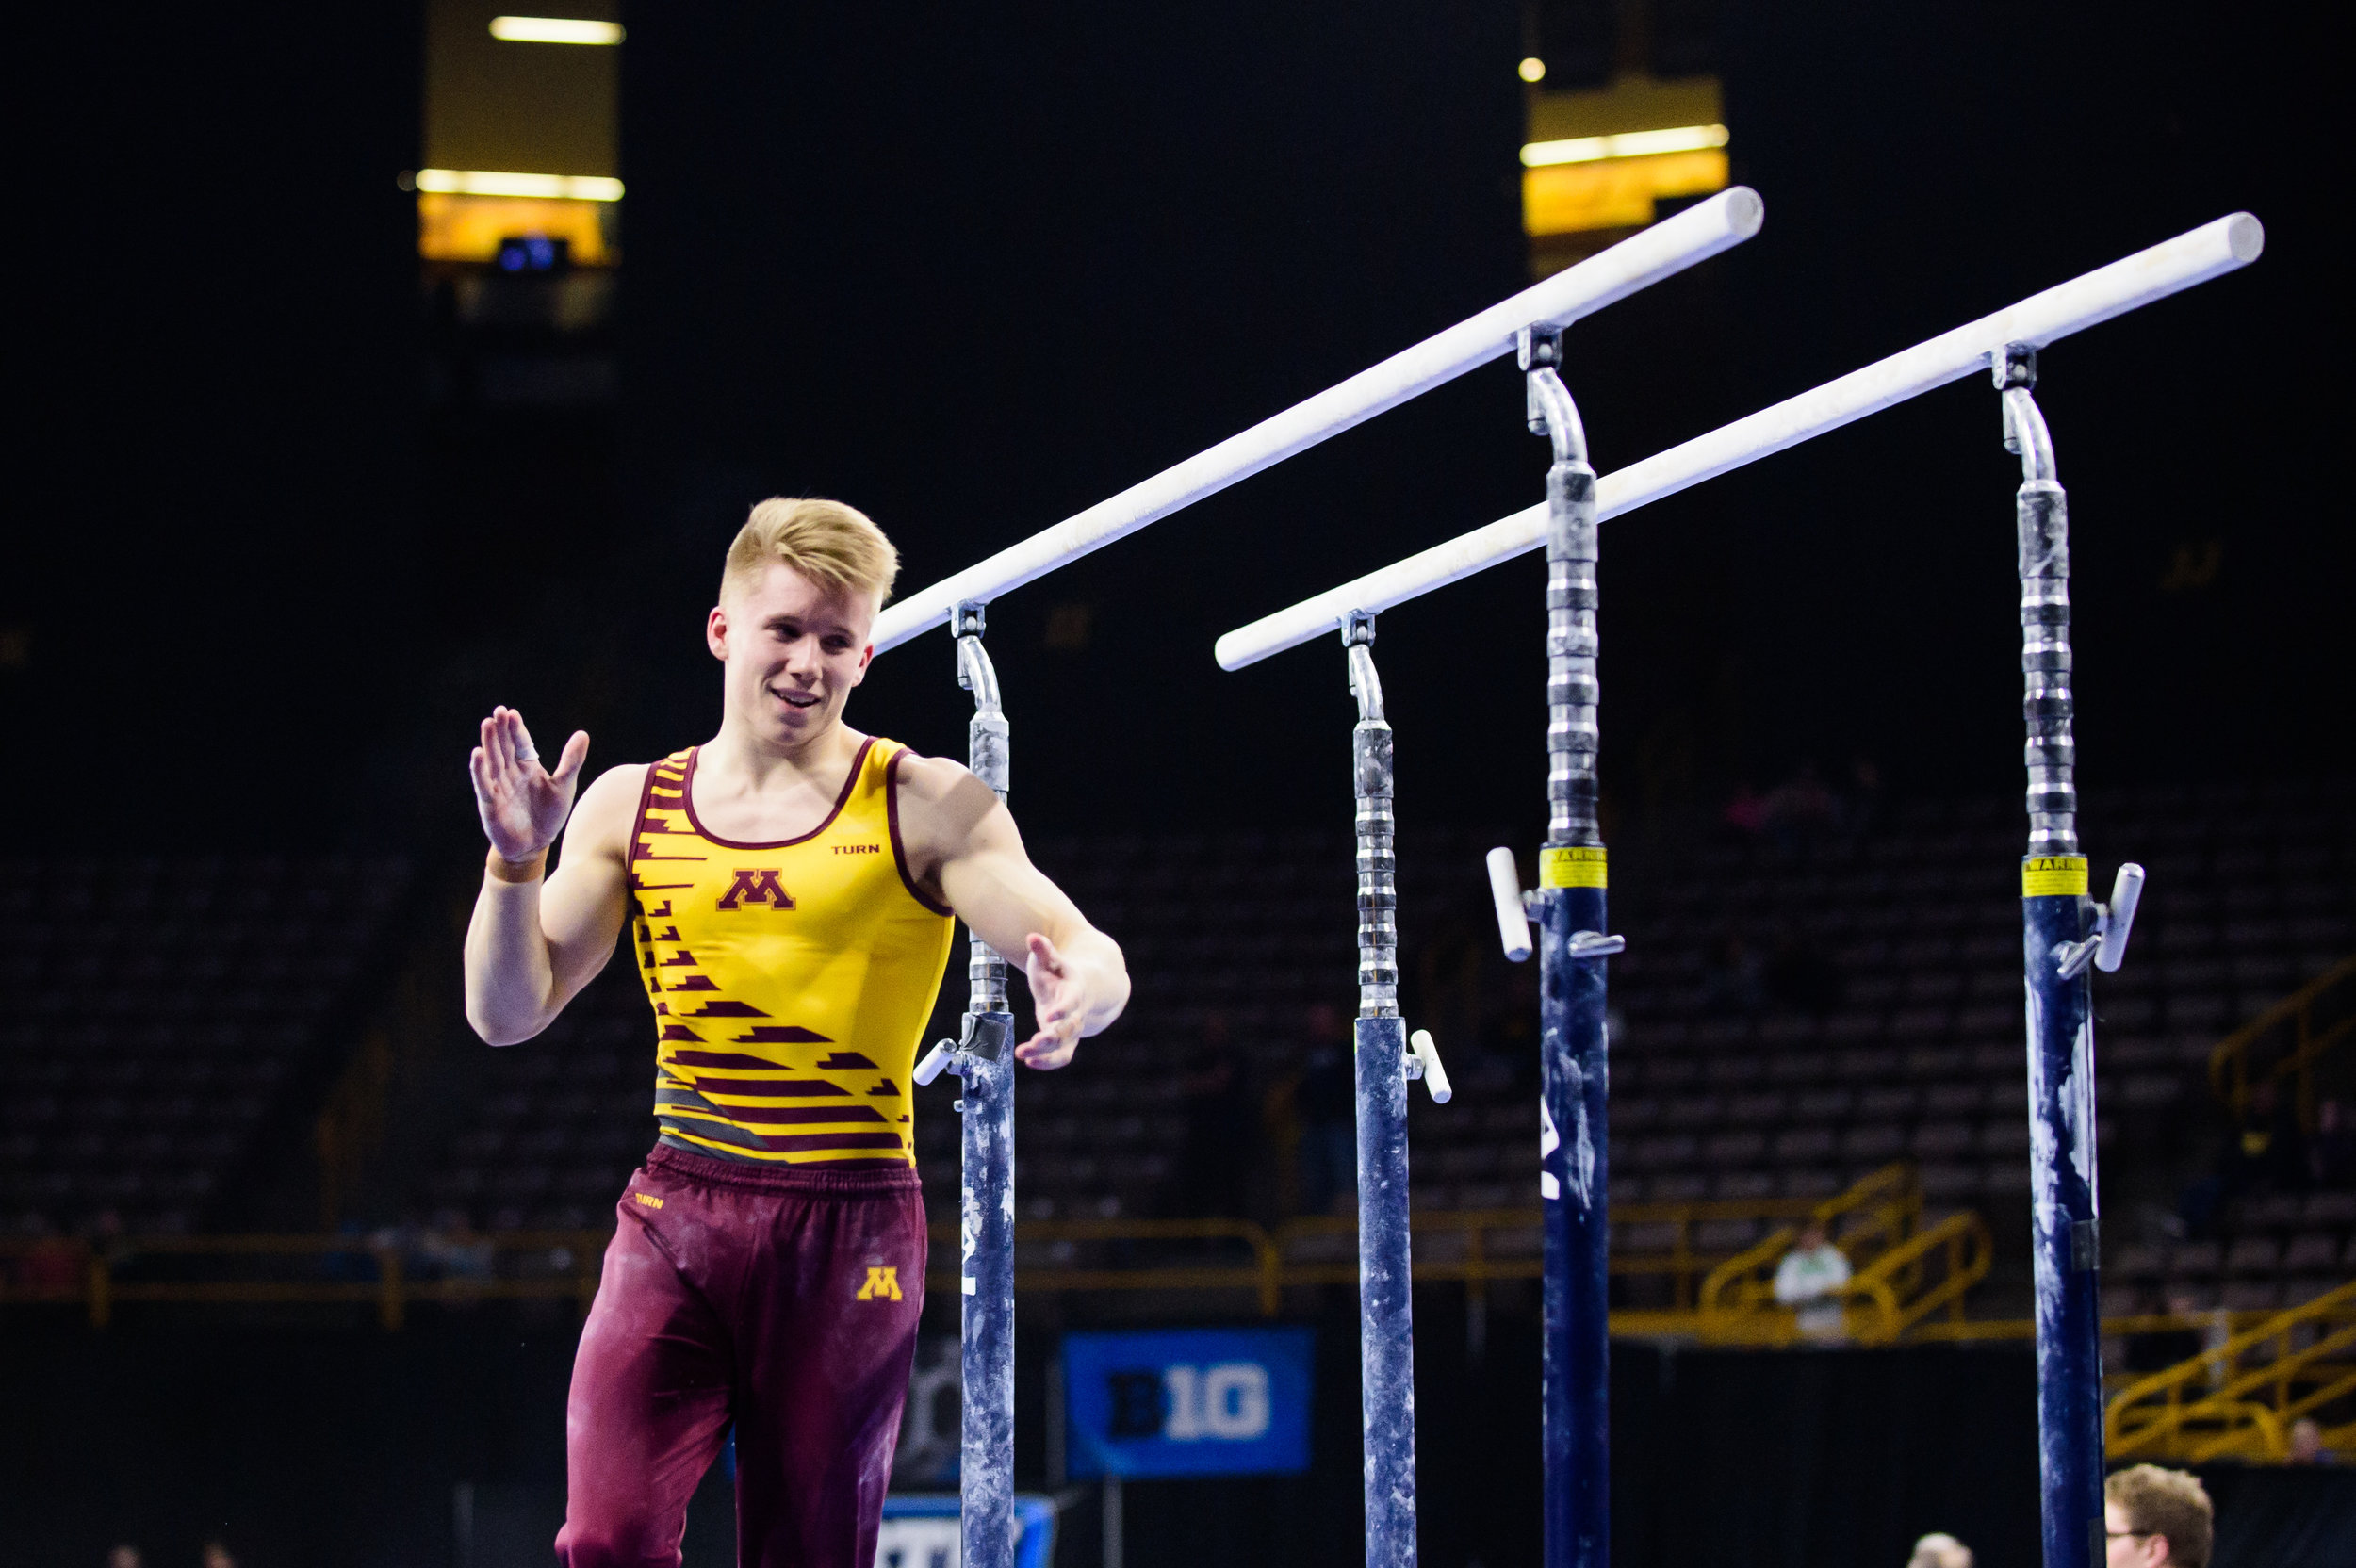 How far can Shane Wiskus take this Minnesota team? (photo: Jess Frankl)